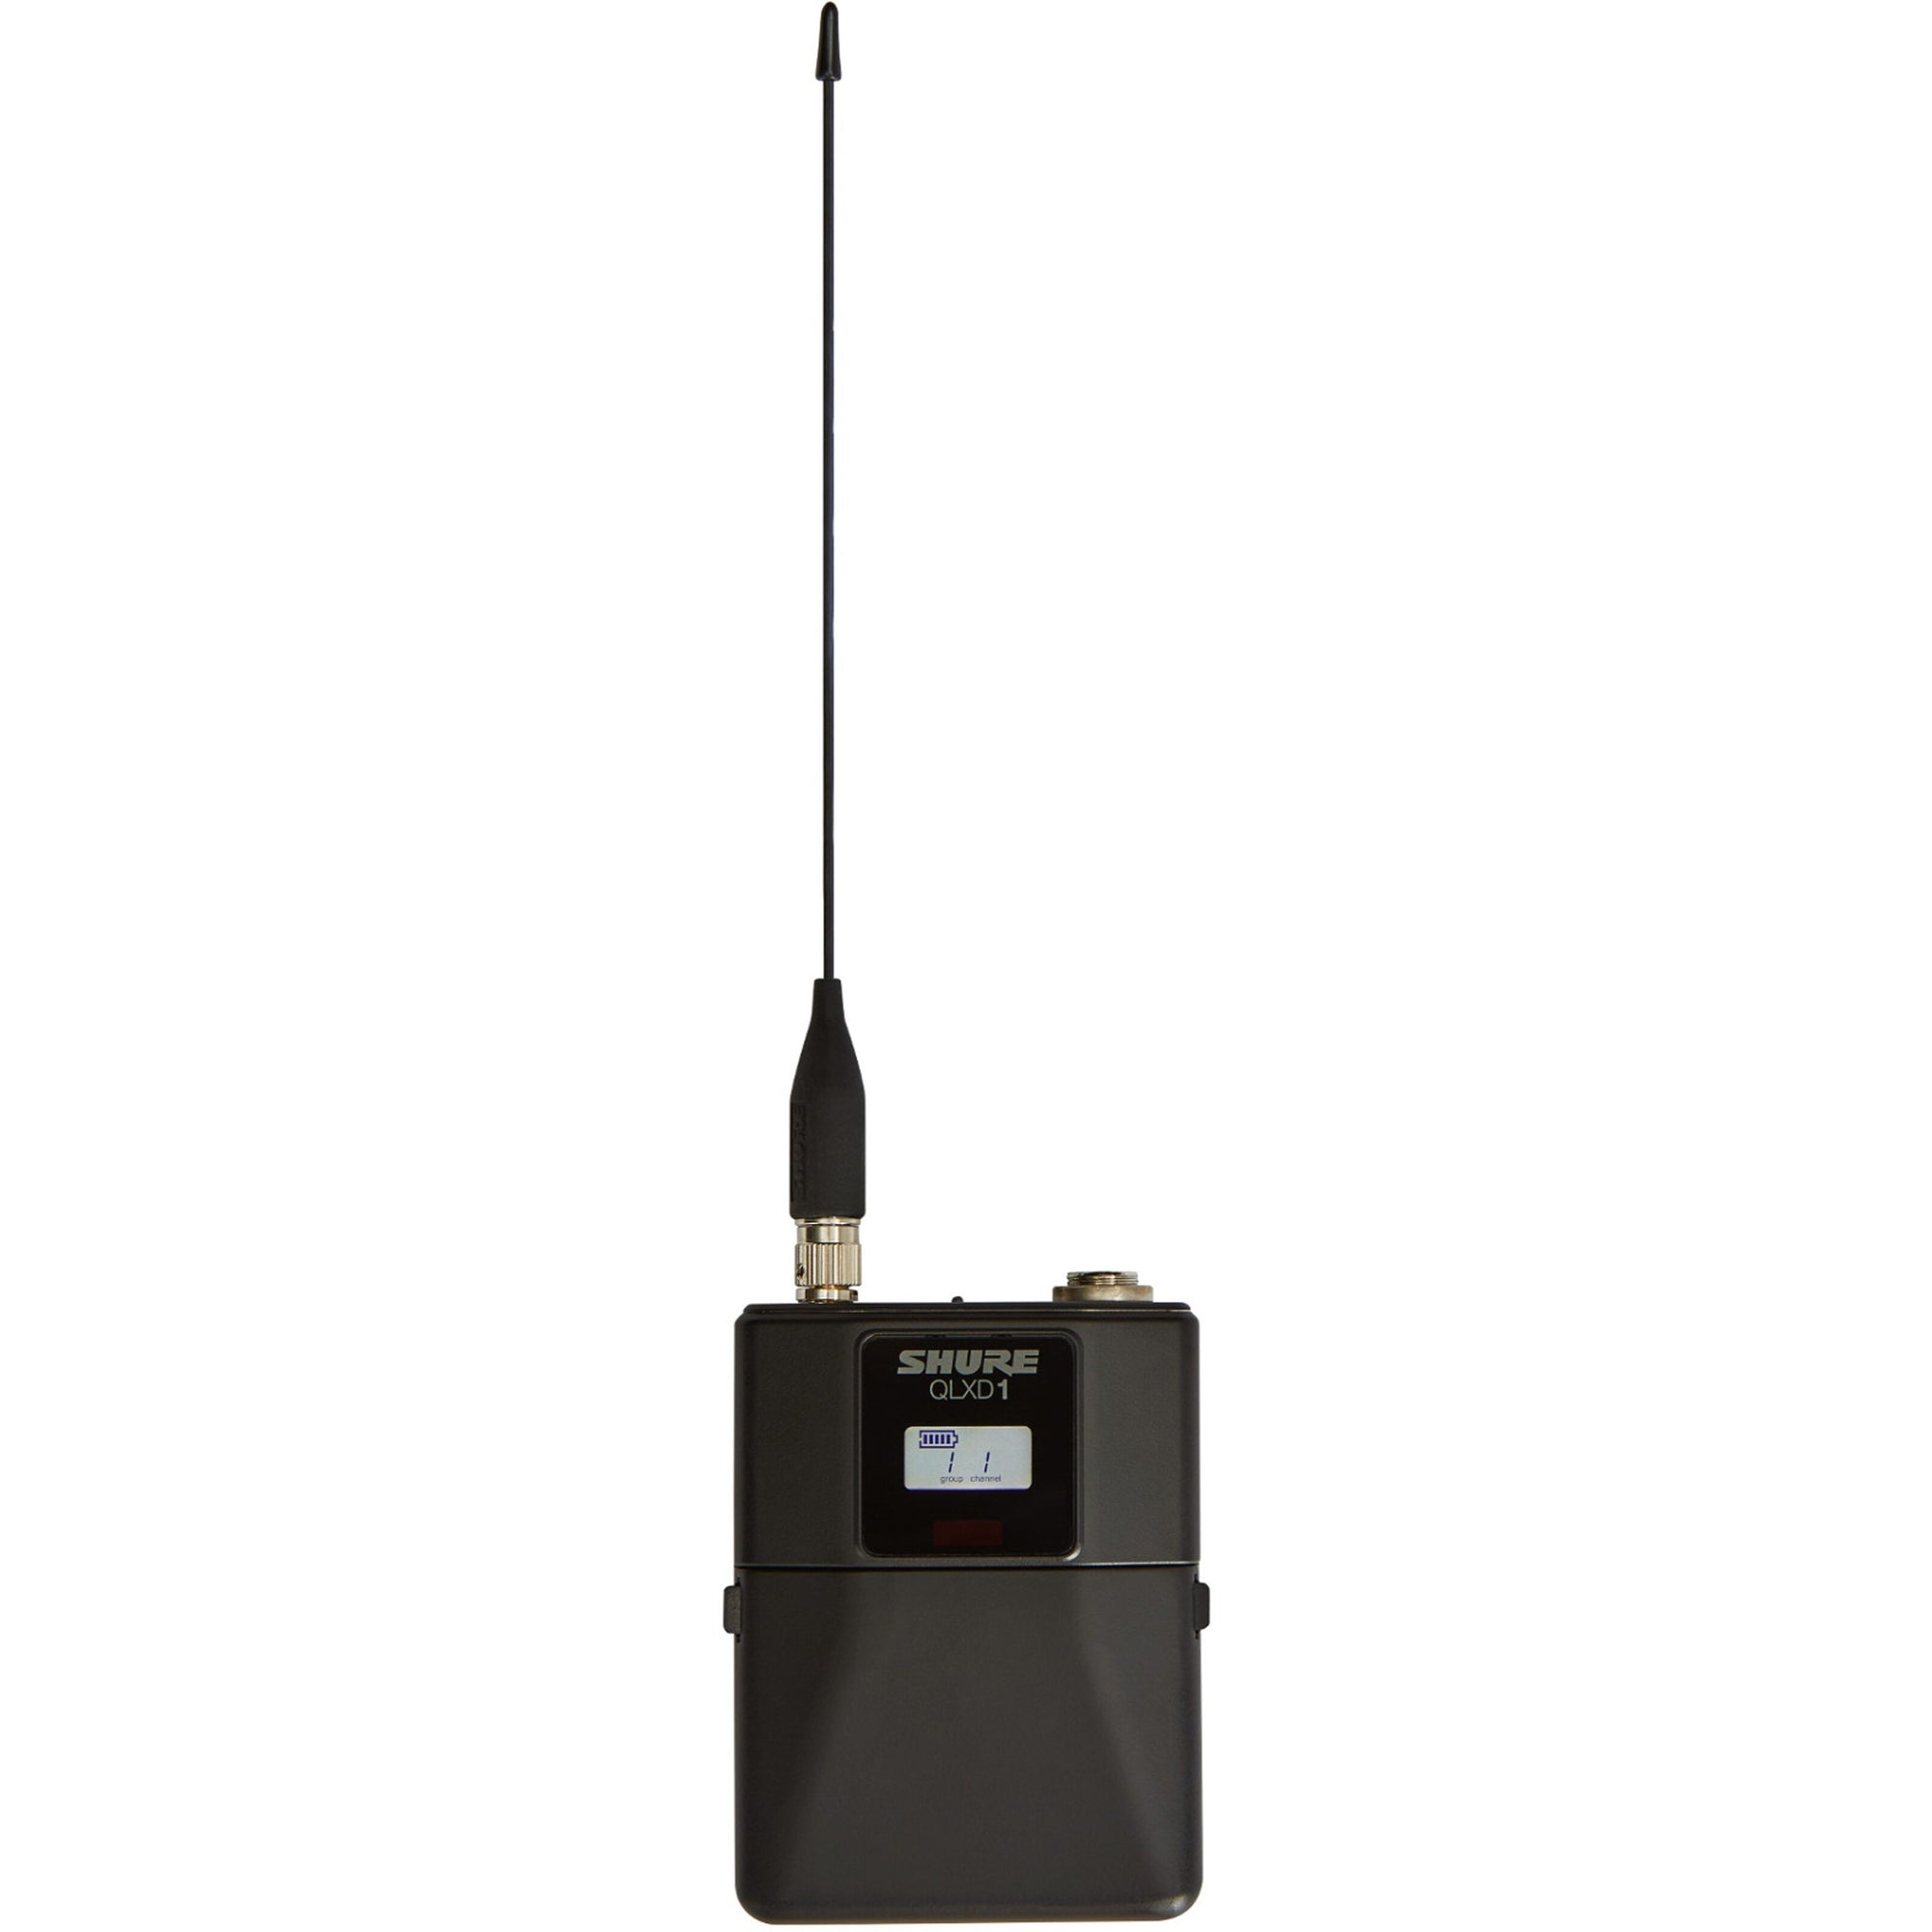 Shure QLXD1483 Wireless System with WL183 Lavalier Microphone, Band V50 (174 - 216 MHz)